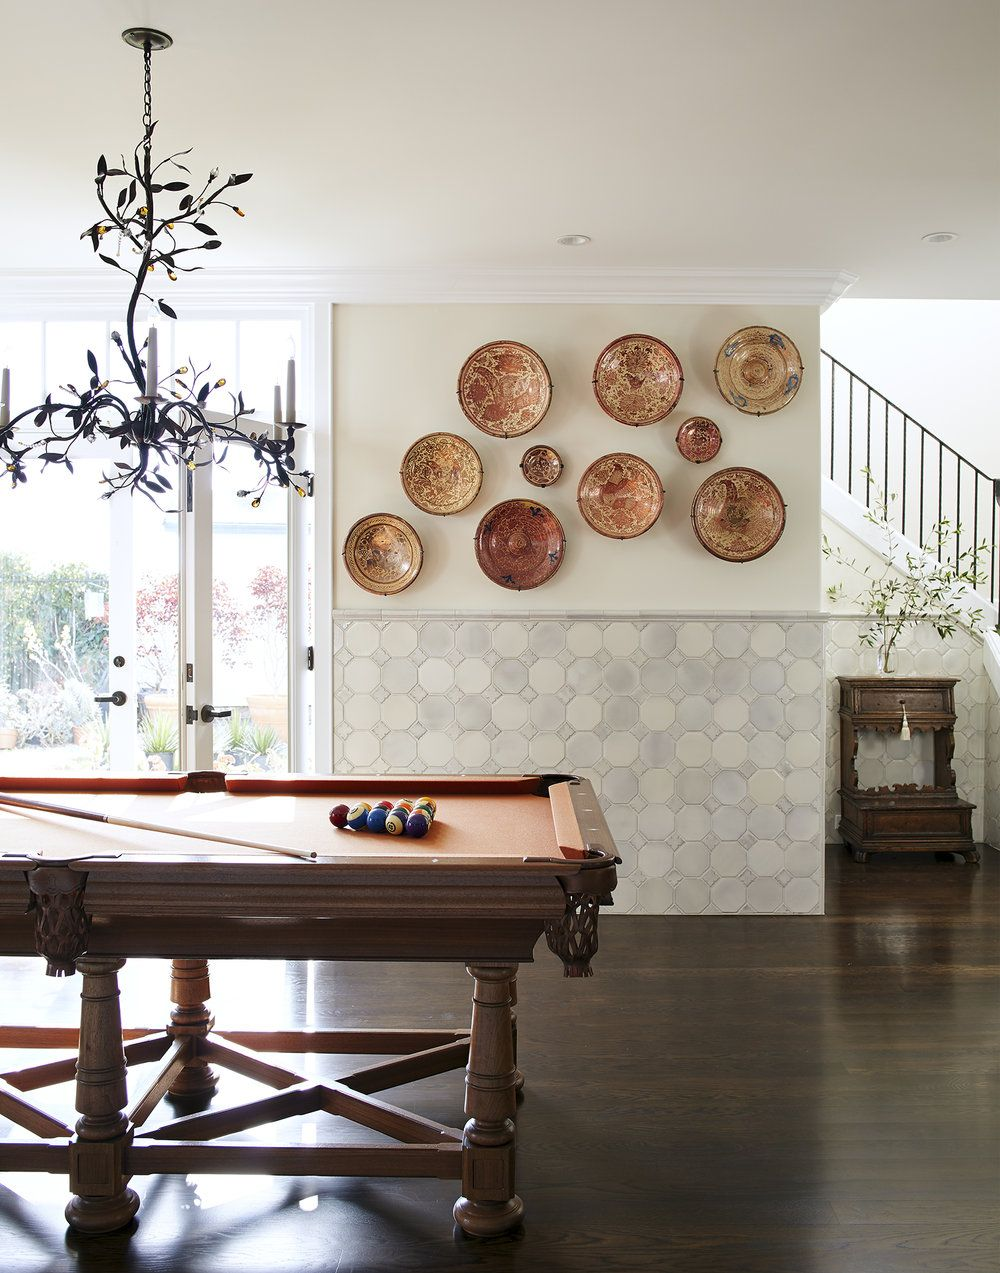 Plates billiard room by amy meier with beautiful tiled wall and dark wood floors also perfect ts for the hostess mostess lake house rh pinterest